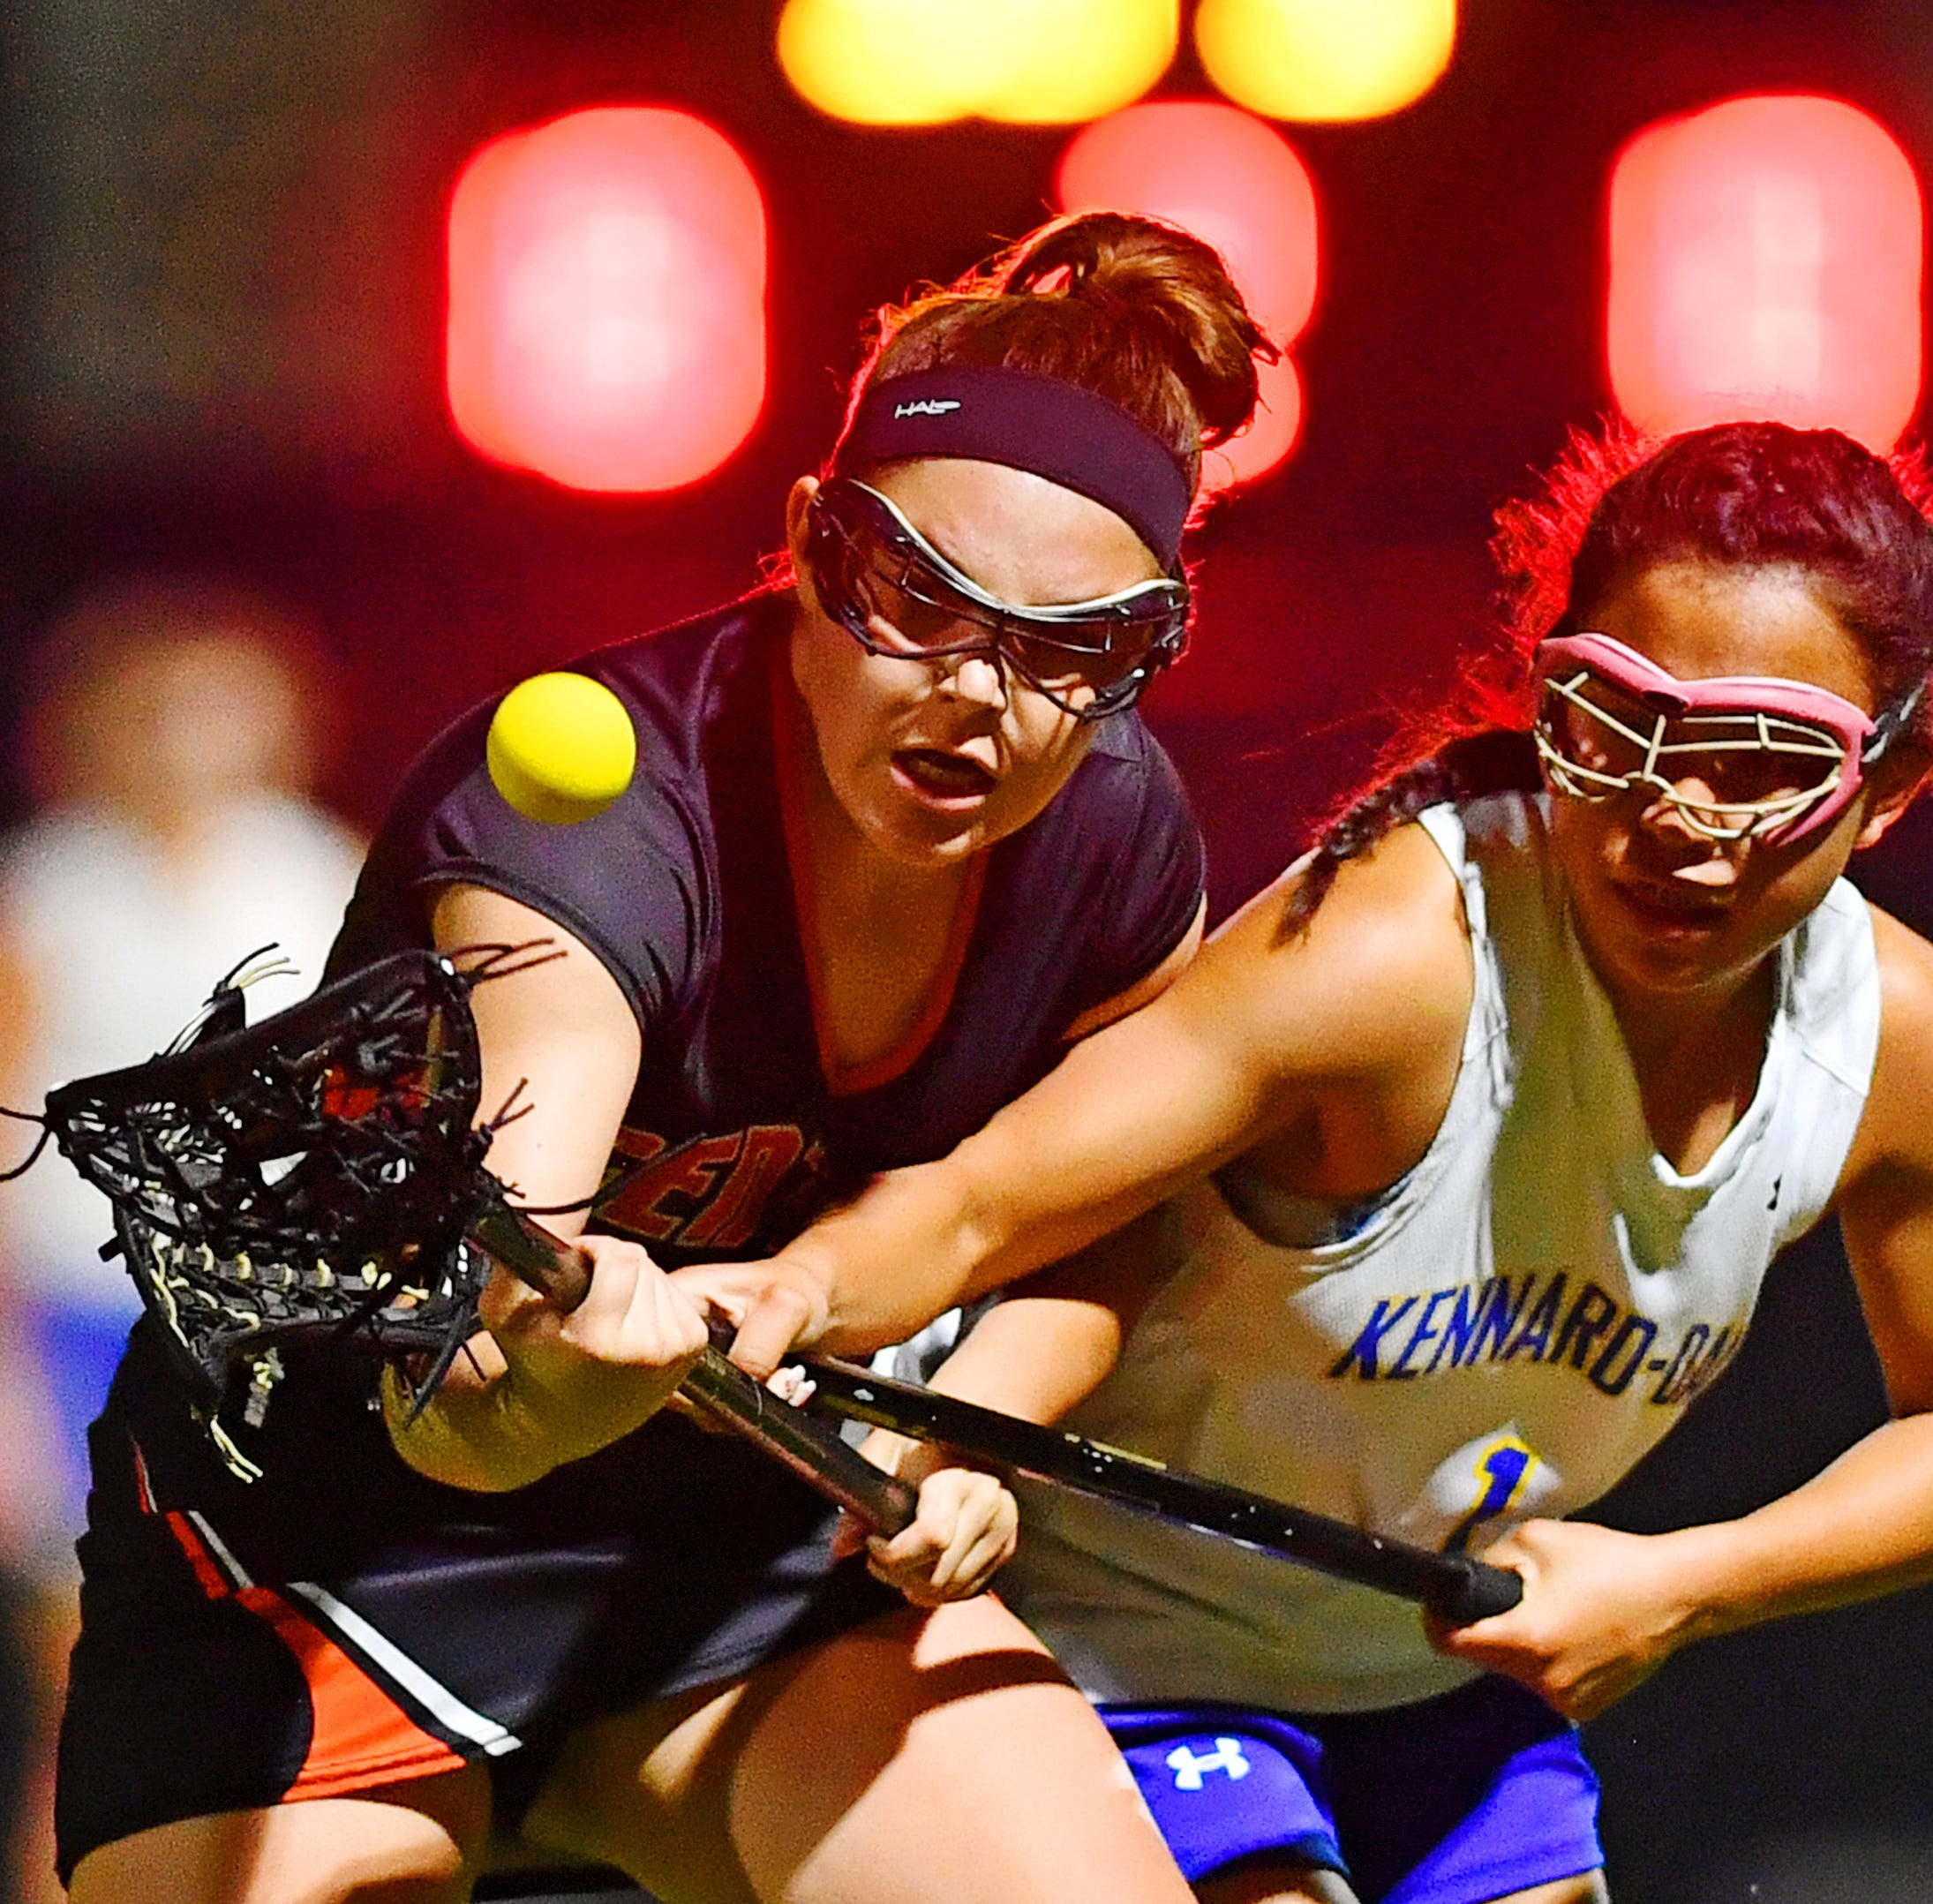 Kennard-Dale tops Central York, earns shot at York Catholic in Y-A girls' lacrosse final